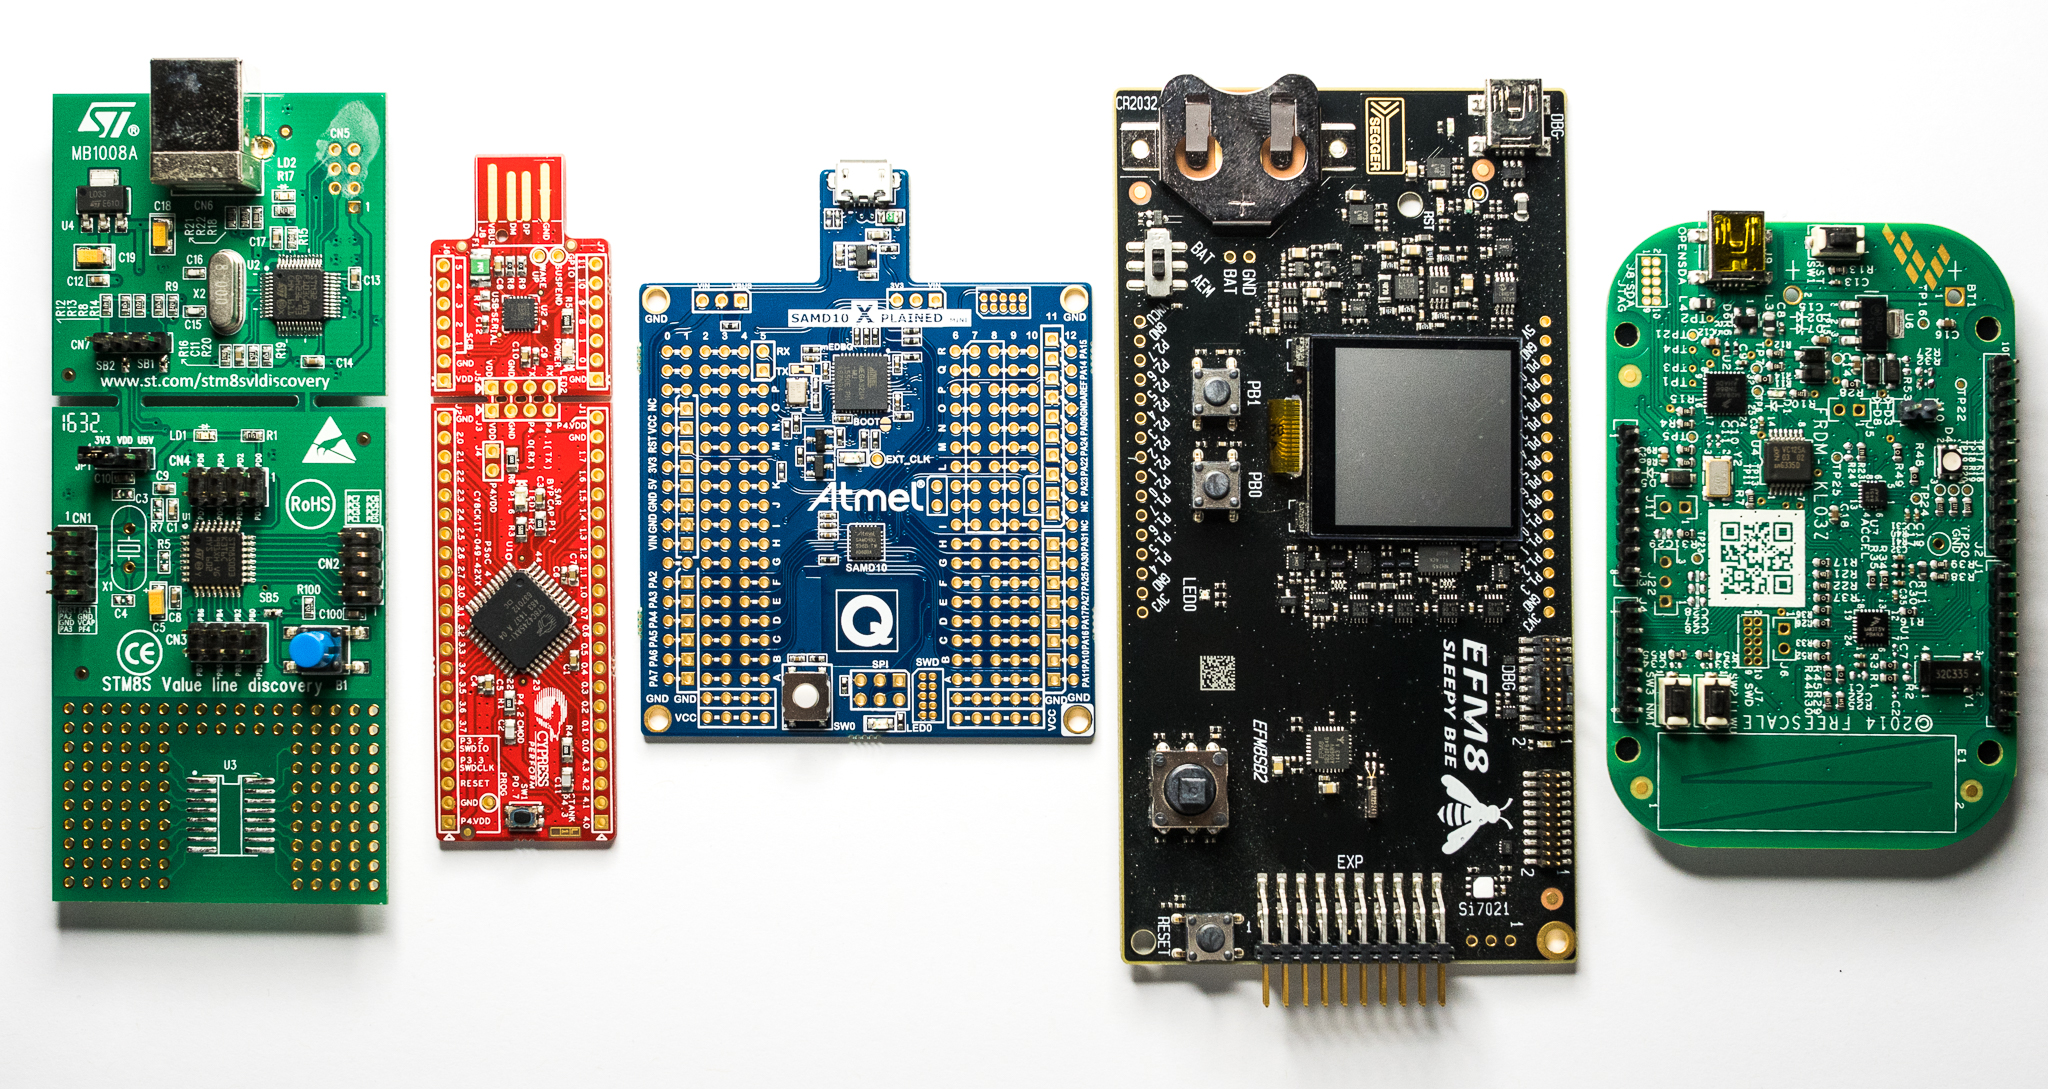 The Amazing $1 Microcontroller